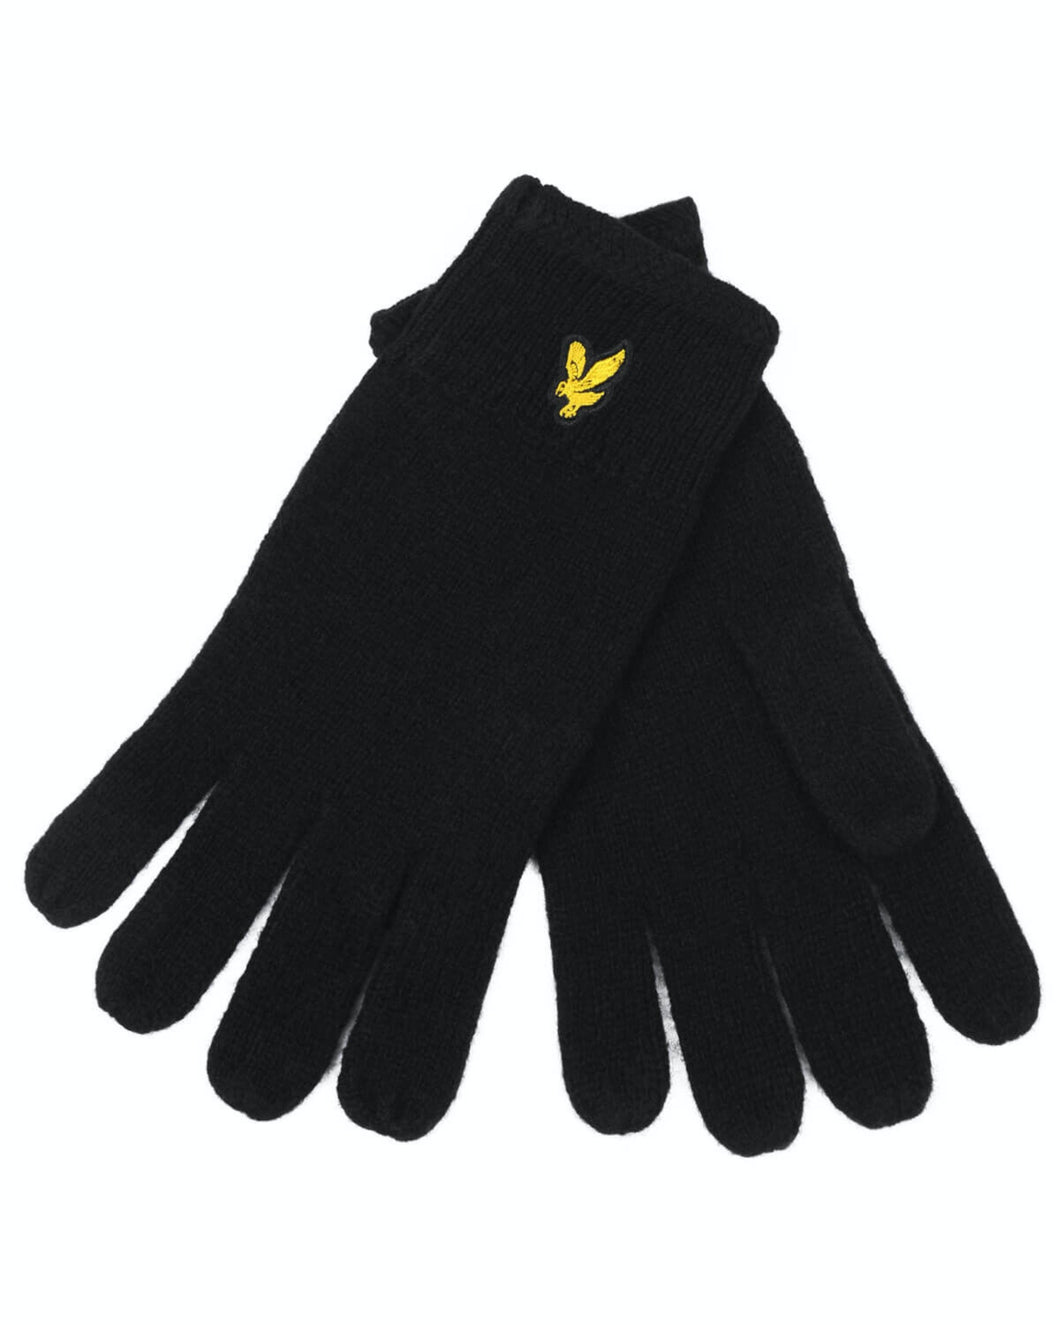 Racked Rib Gloves - Black / One Size - HANDSKAR ACCESSOARER,